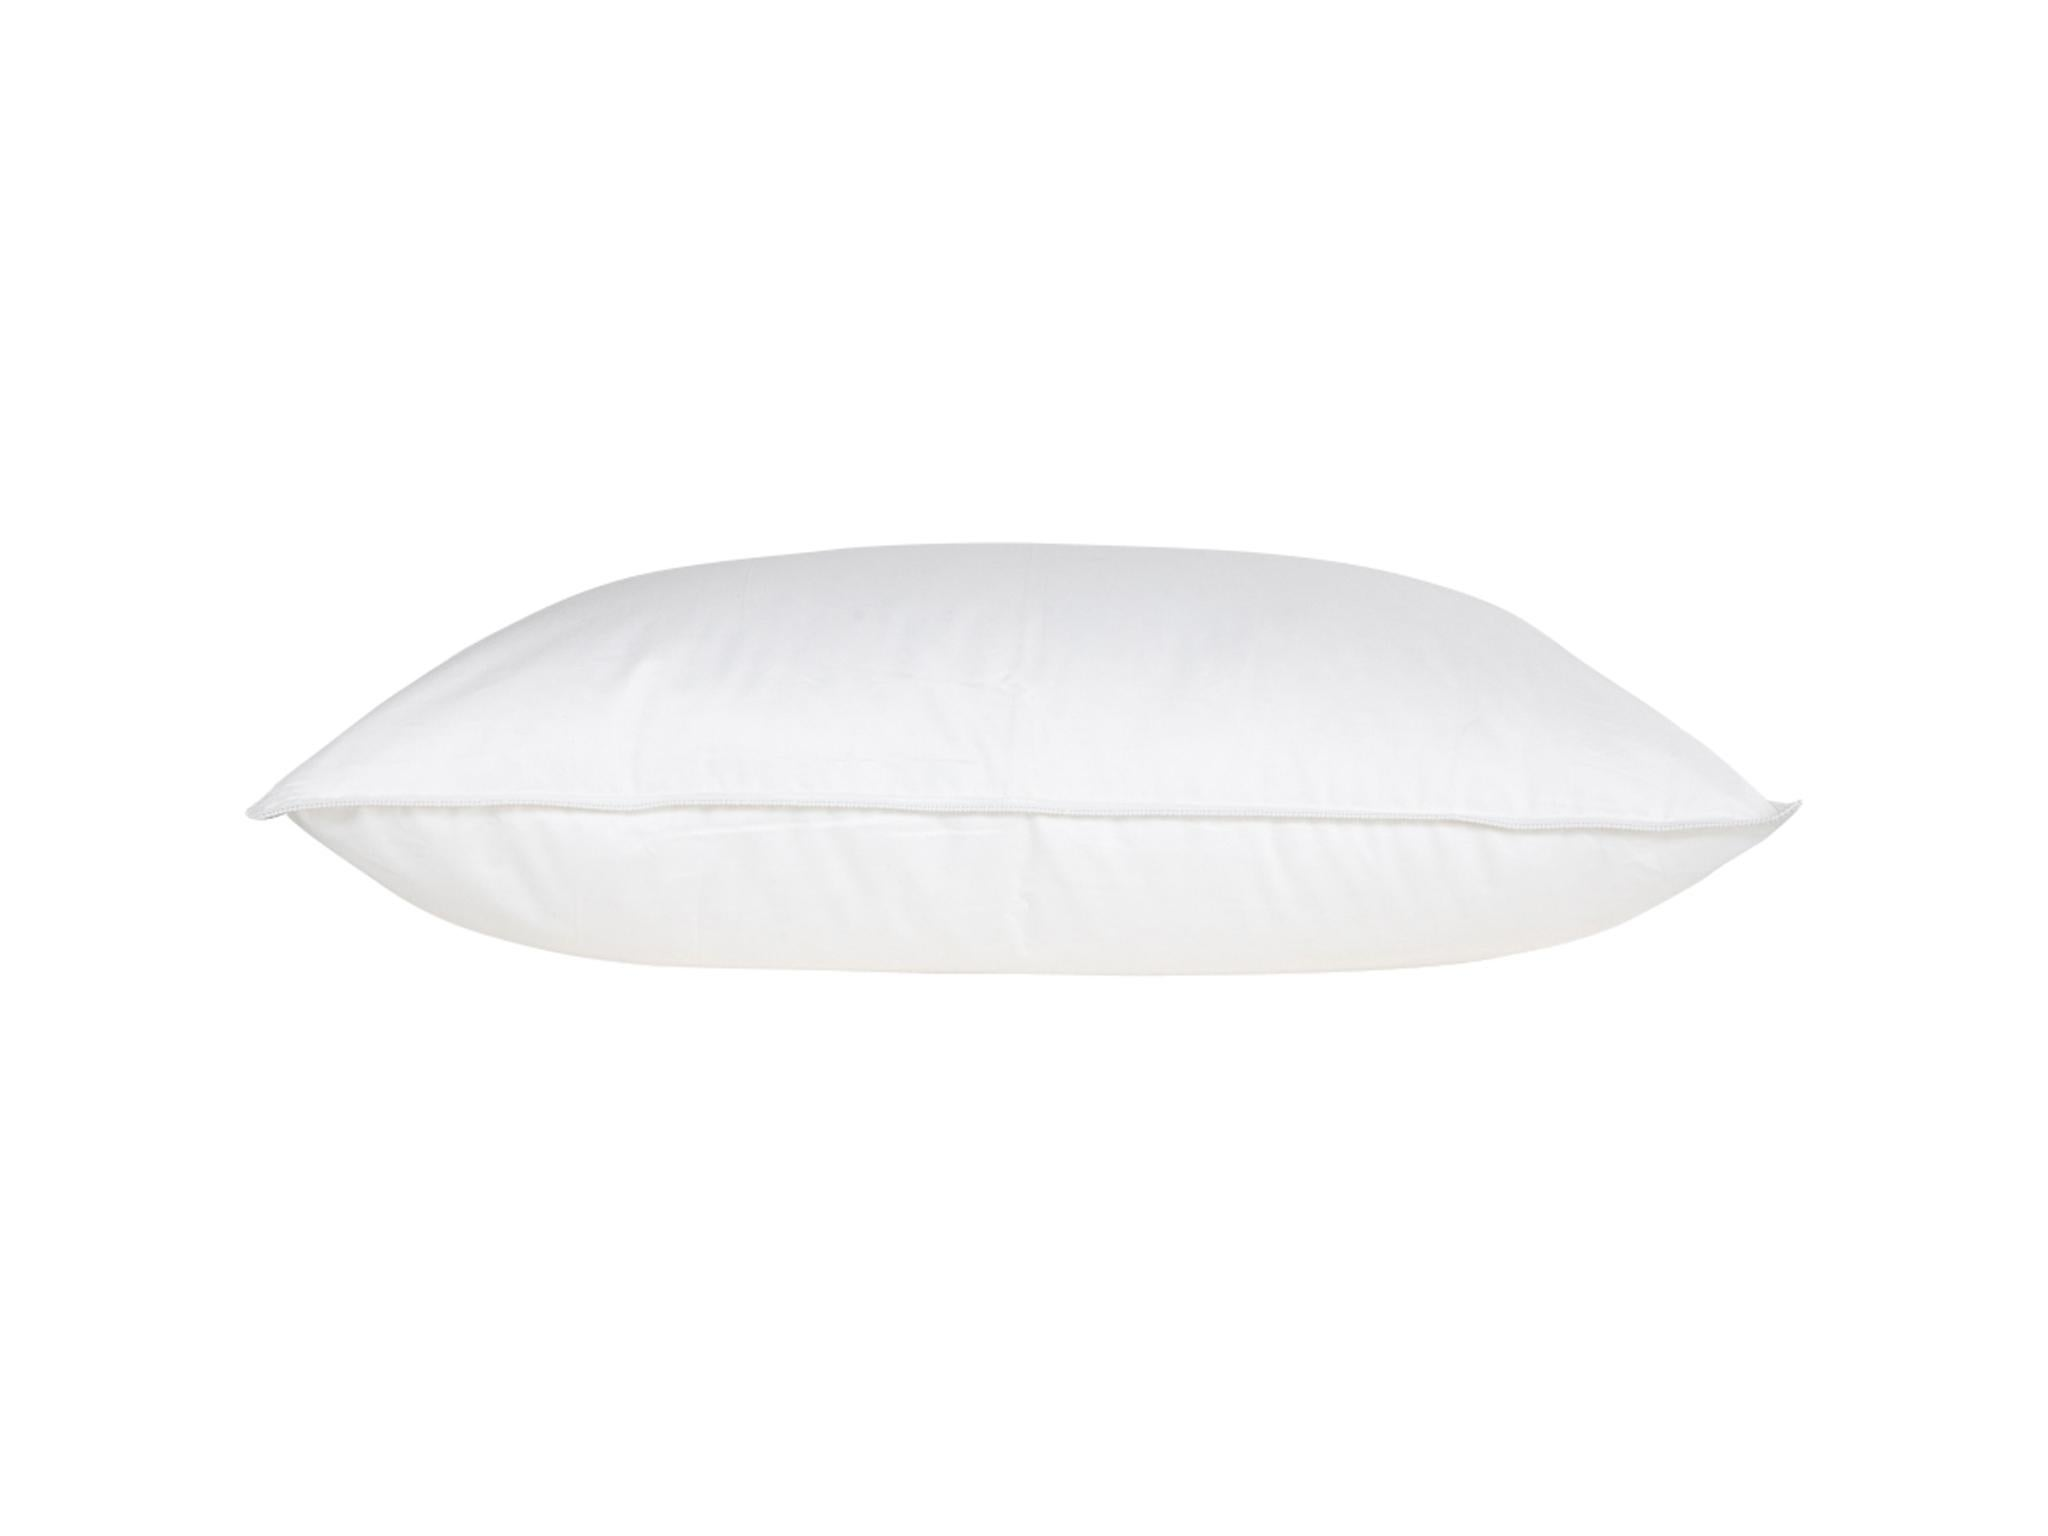 Pillow For Side Sleeper in 2020 in 2020